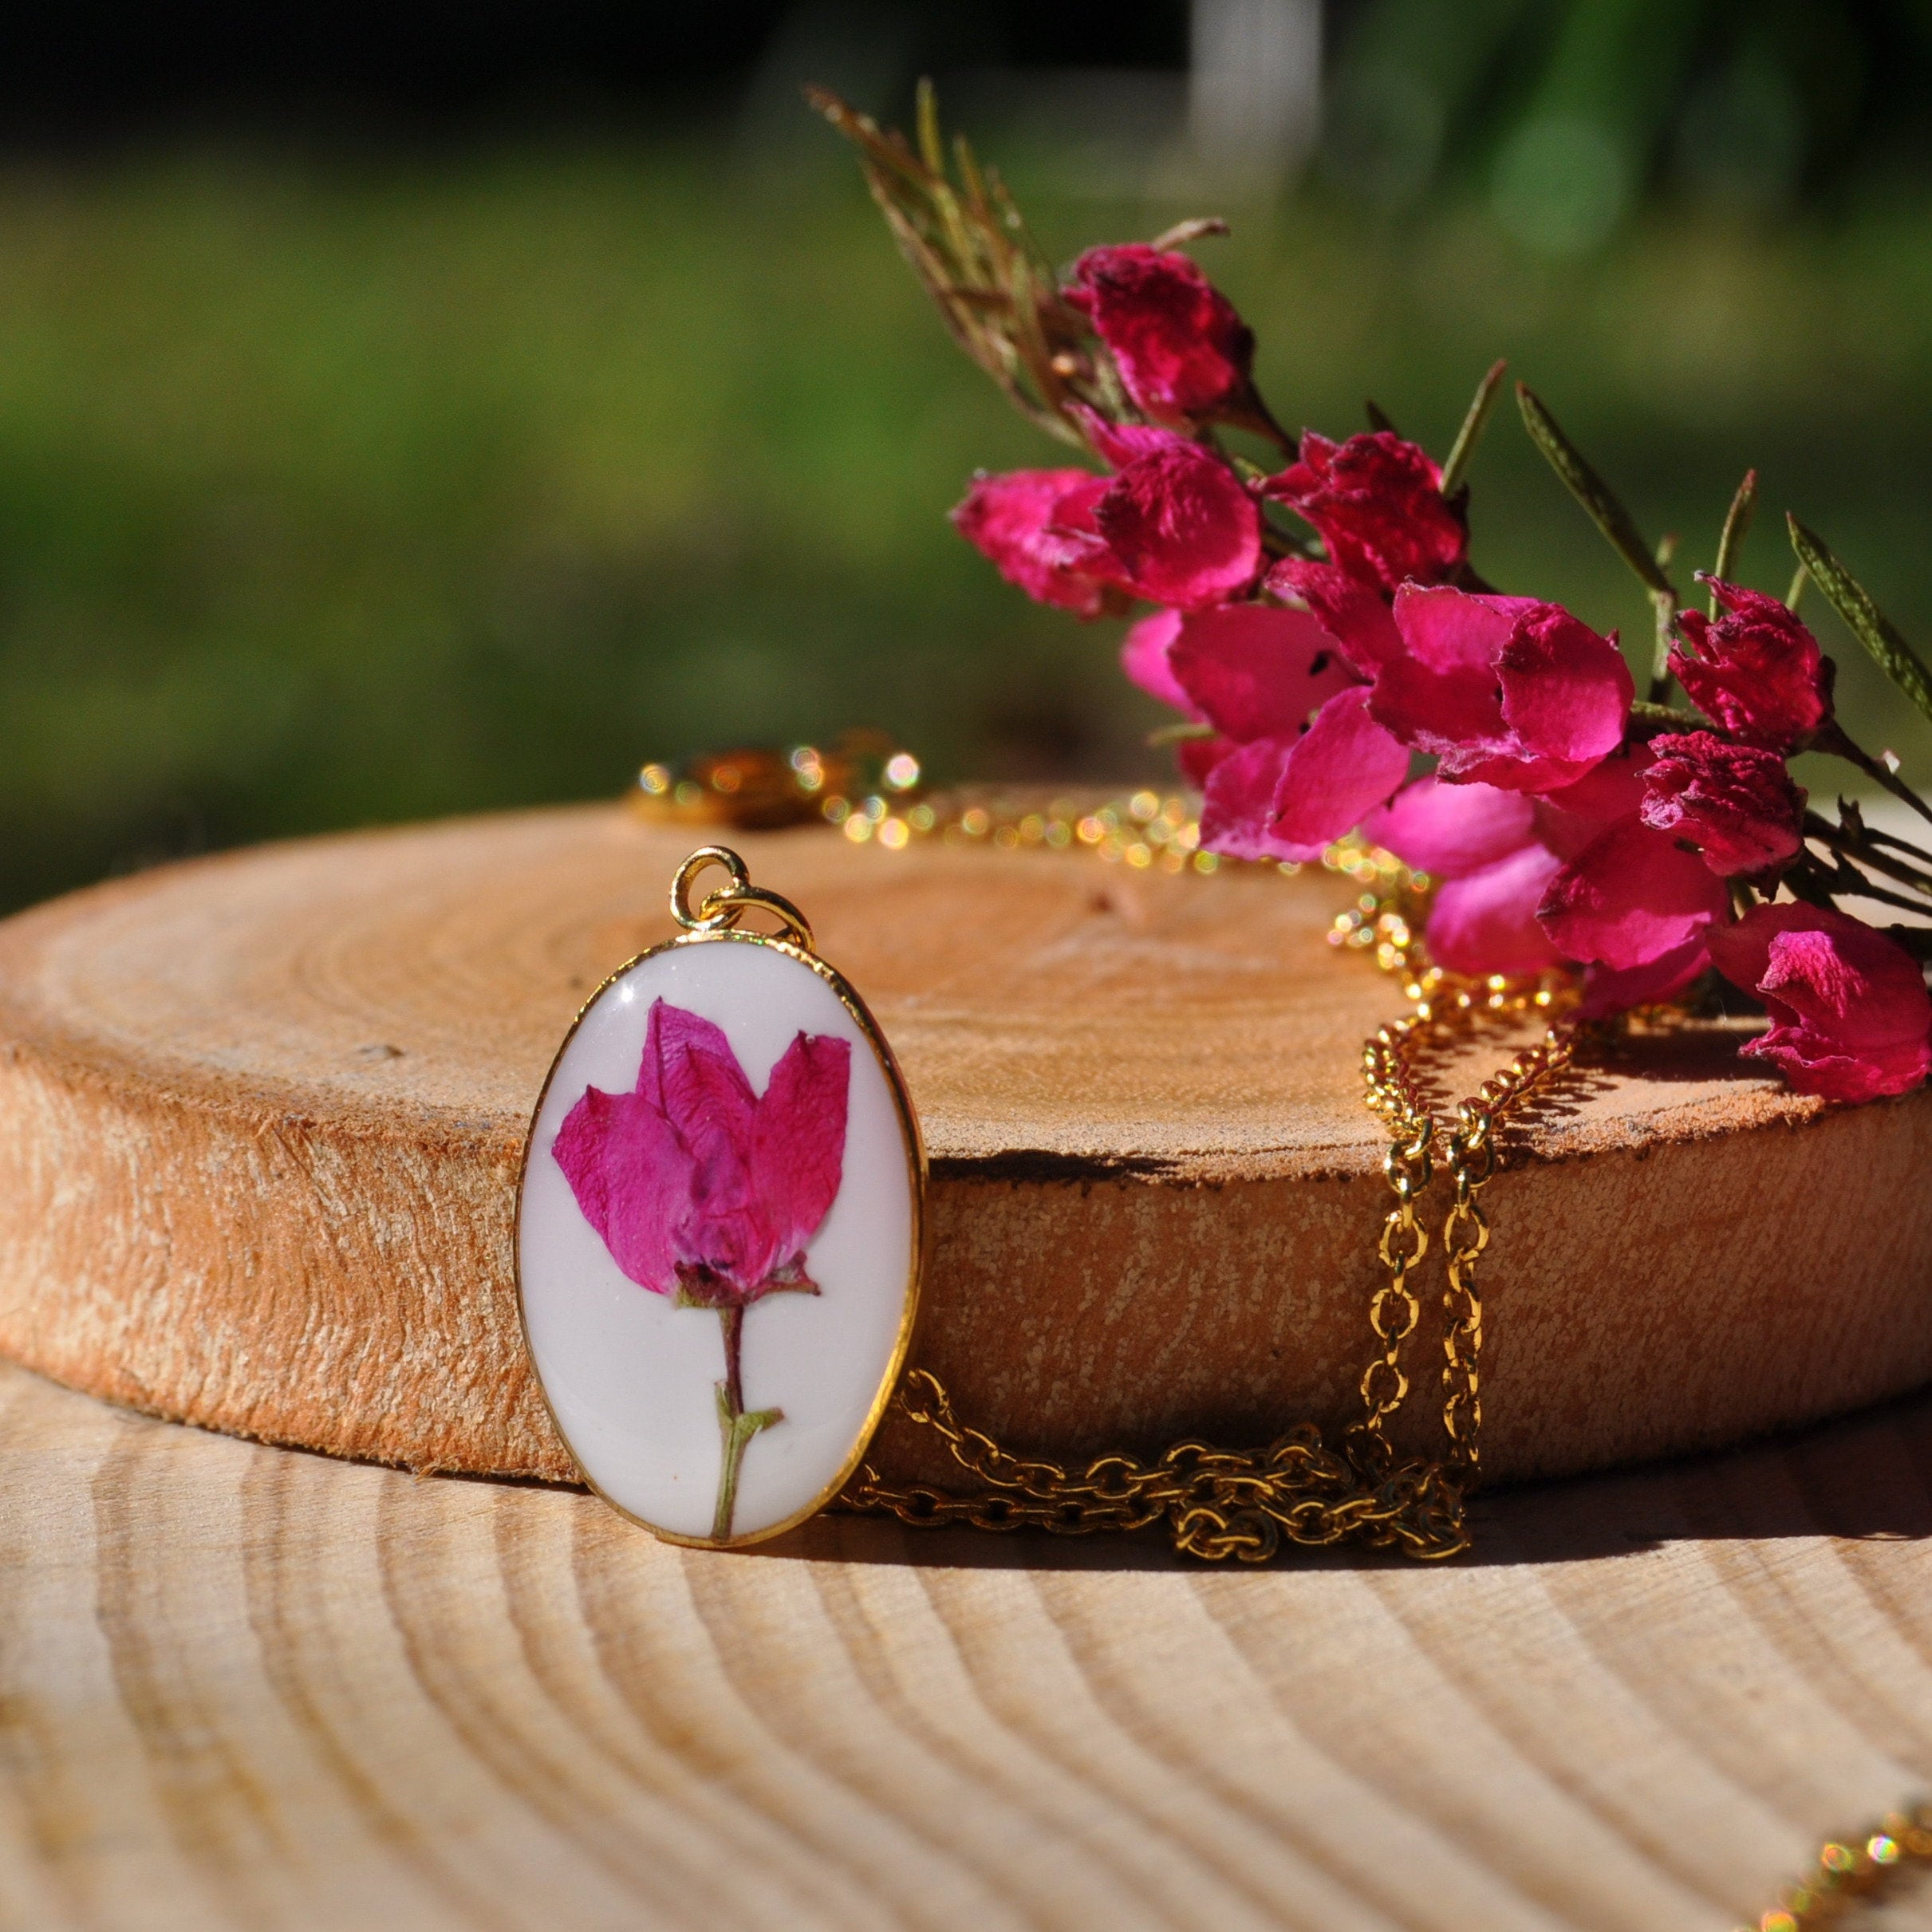 Pink Flowers Australia Pink Flower In Resin Necklace Boronia Necklace Australian Flower Necklace Gift From Australia Best Friend Gift Gold Pendant